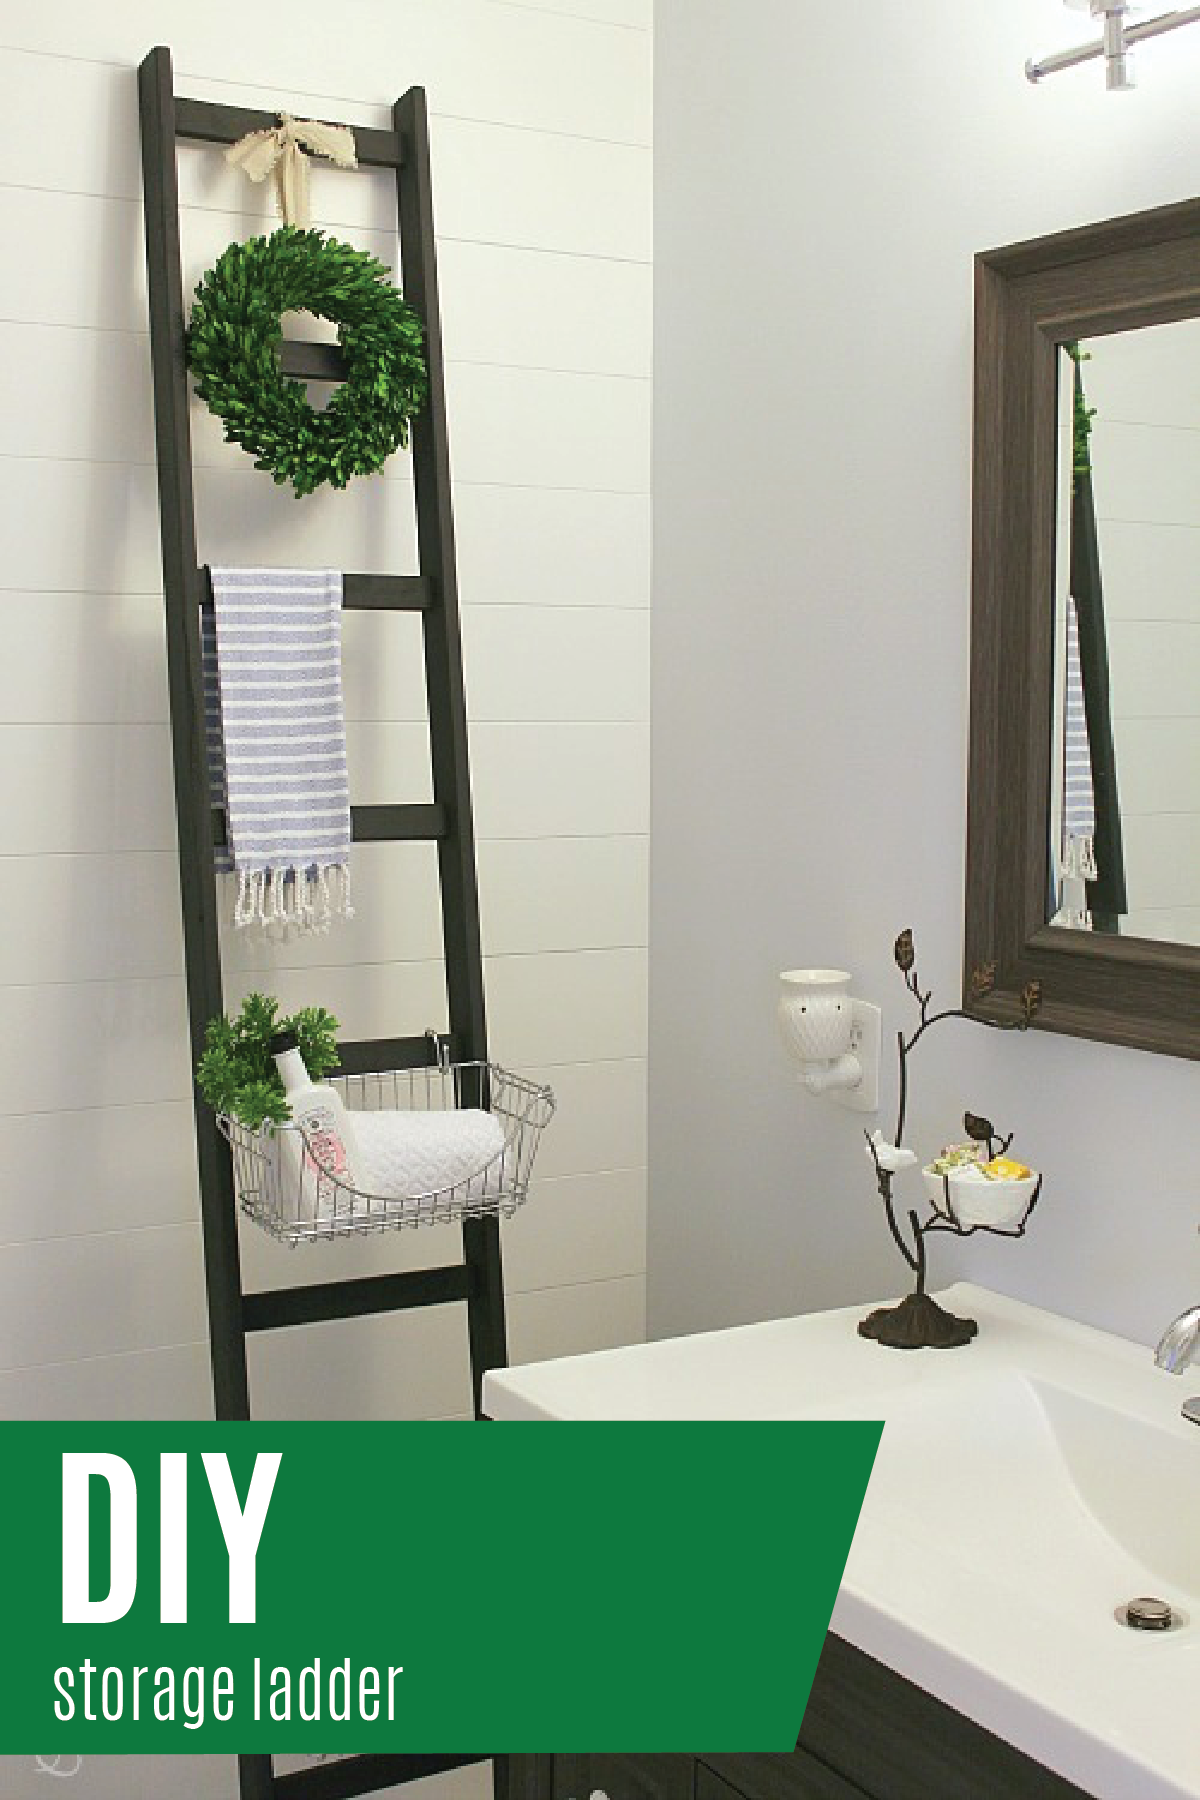 DIY Storage Ladder | DIY storage, Hanging wire basket and Bathroom ...